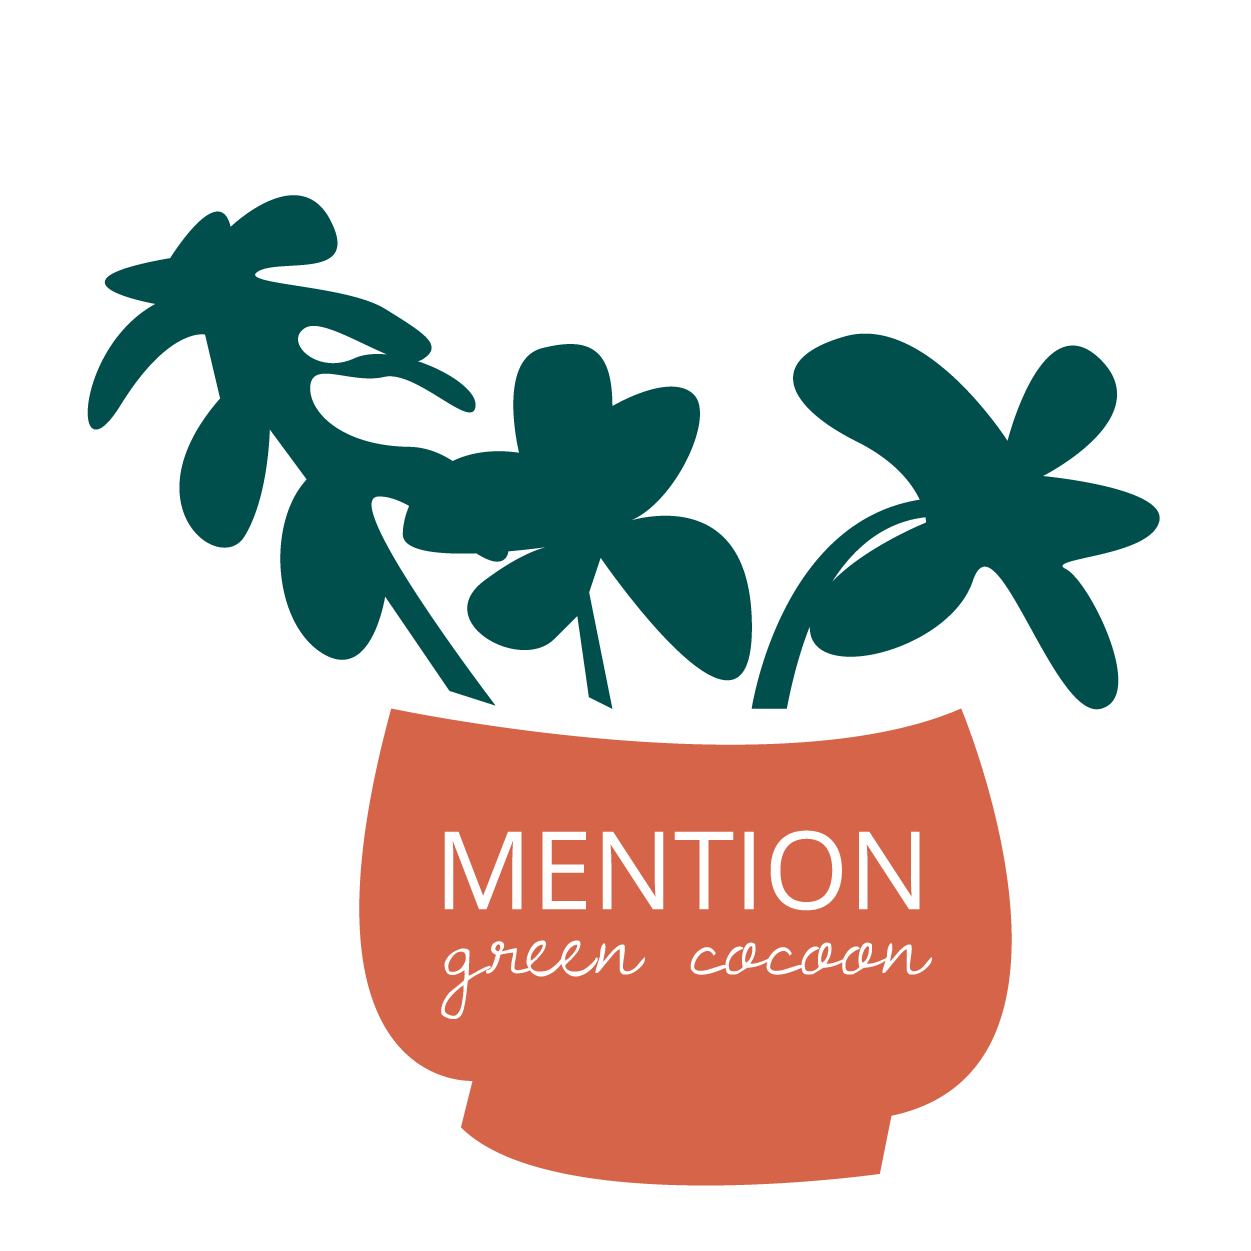 mention green cocoon slow deco ecoresponsable